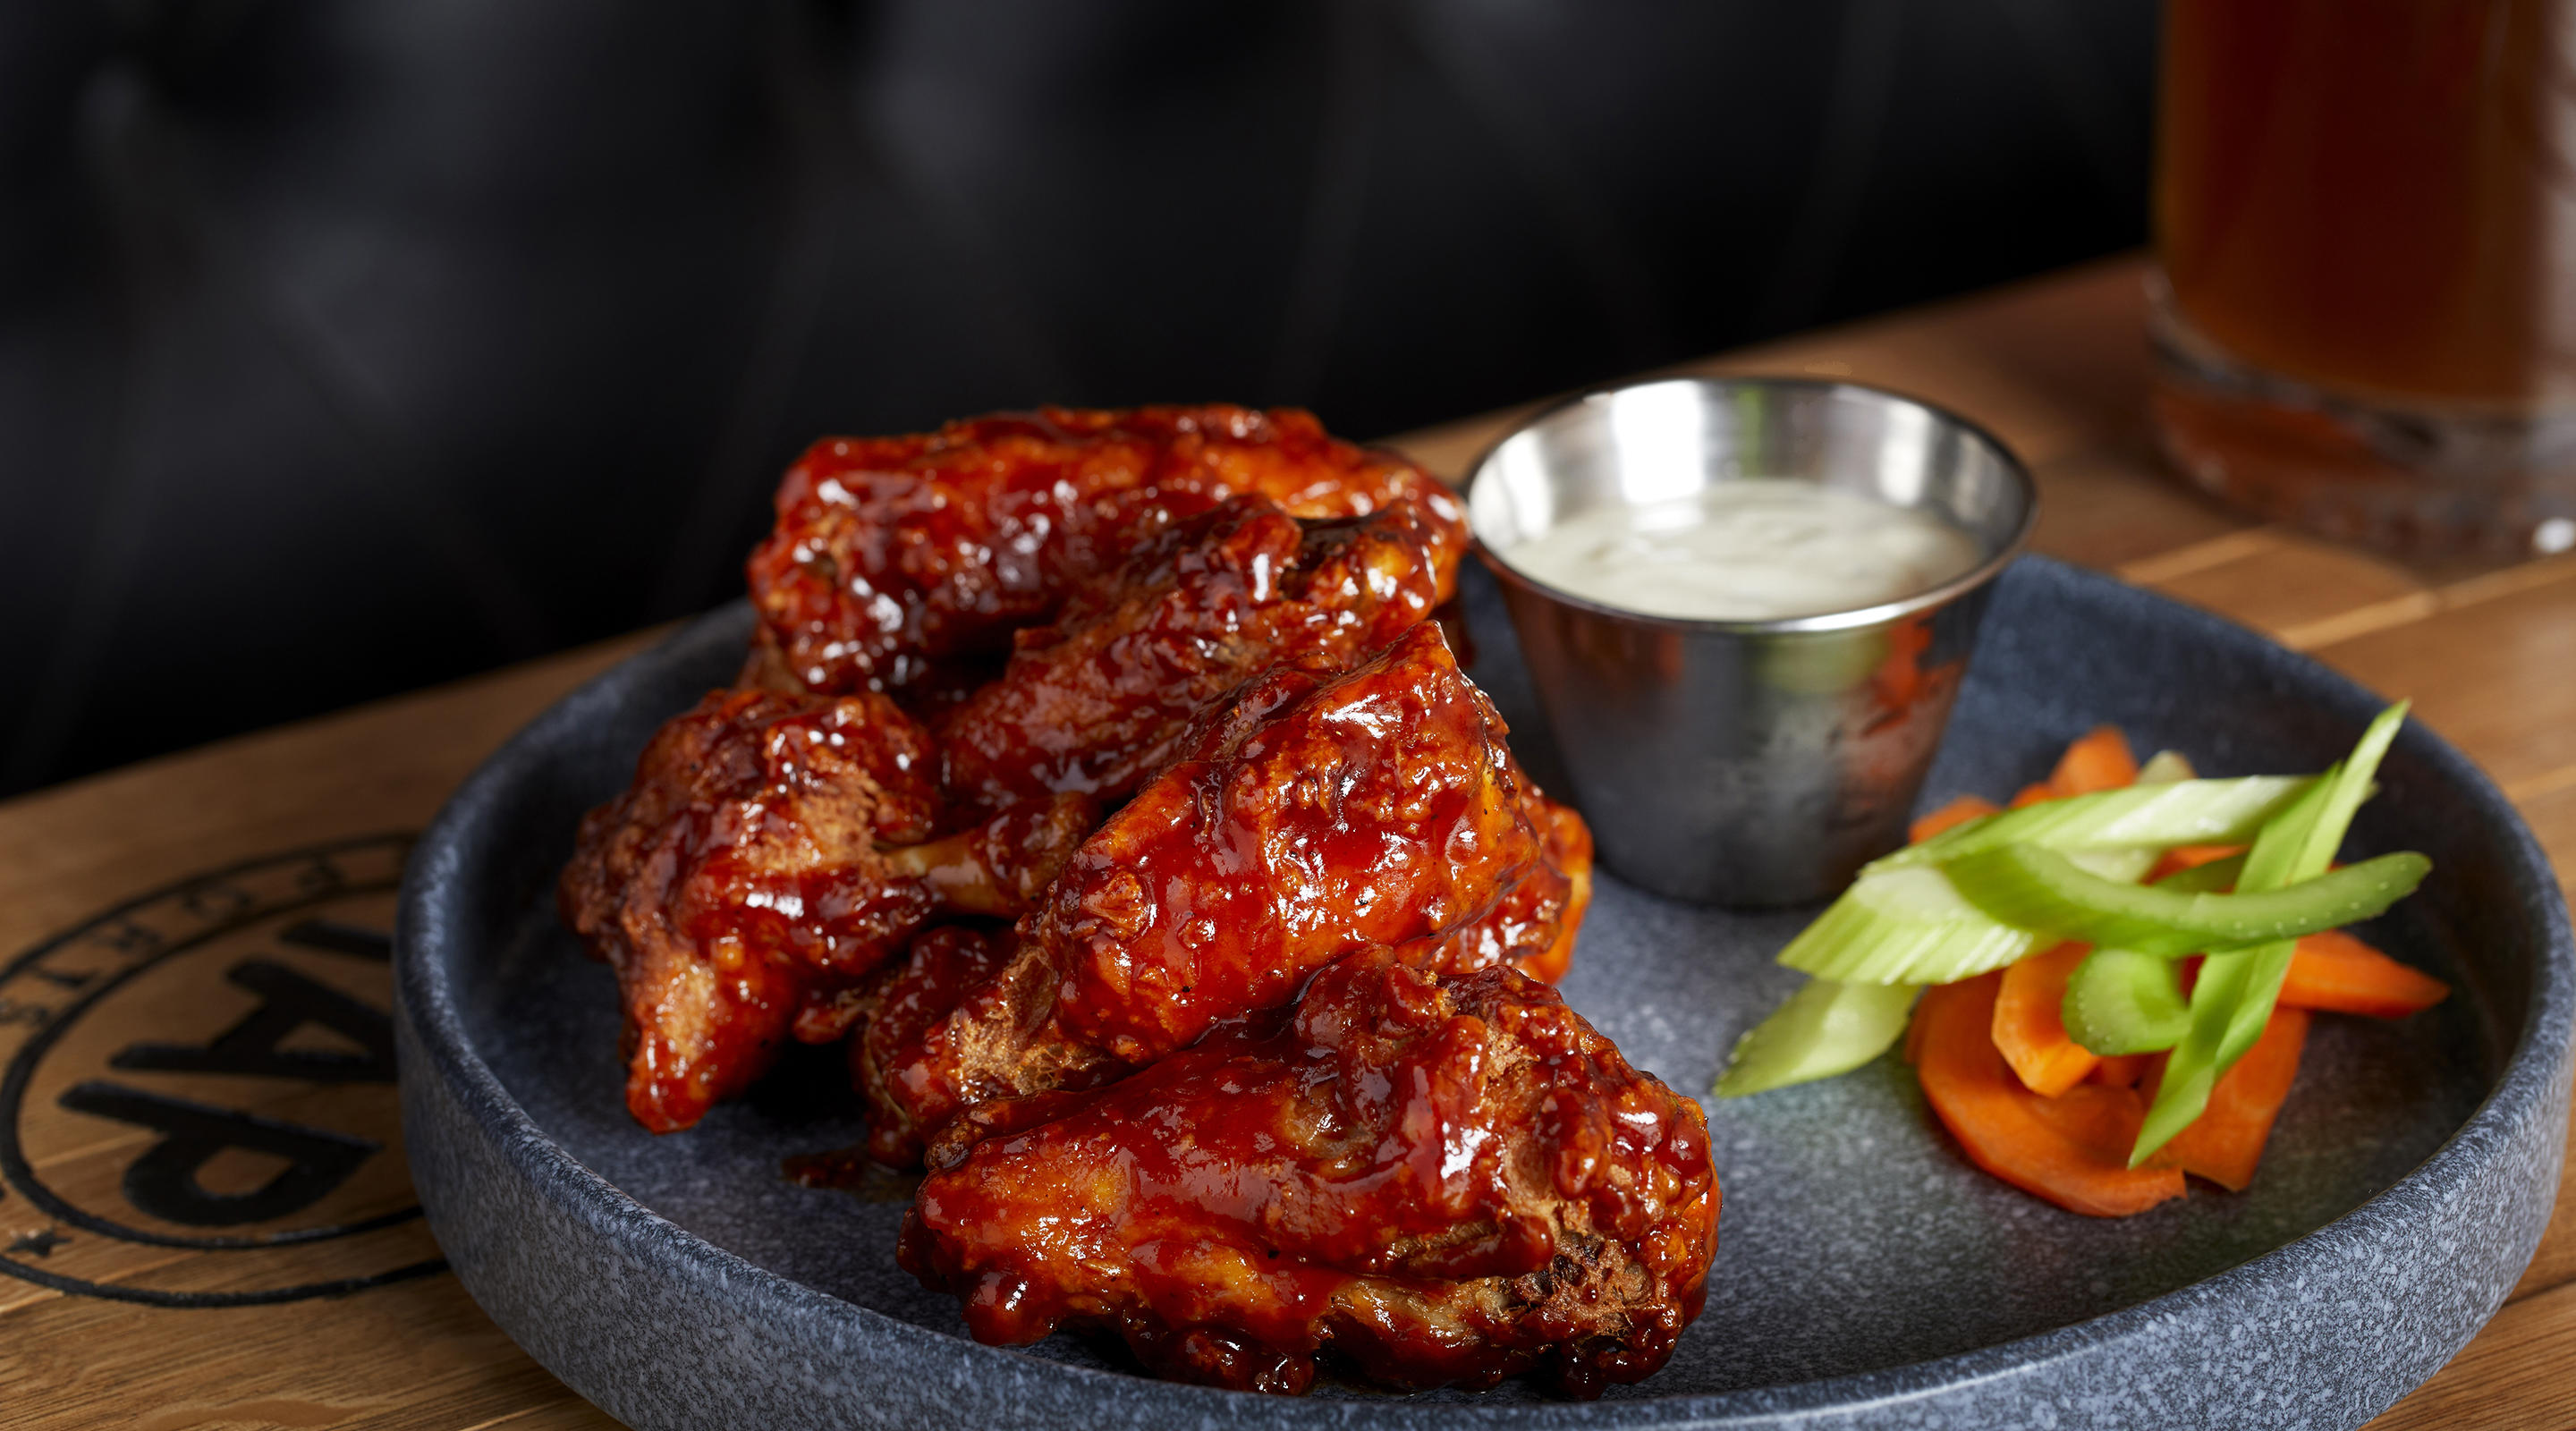 The wings are the perfect bar food snack.